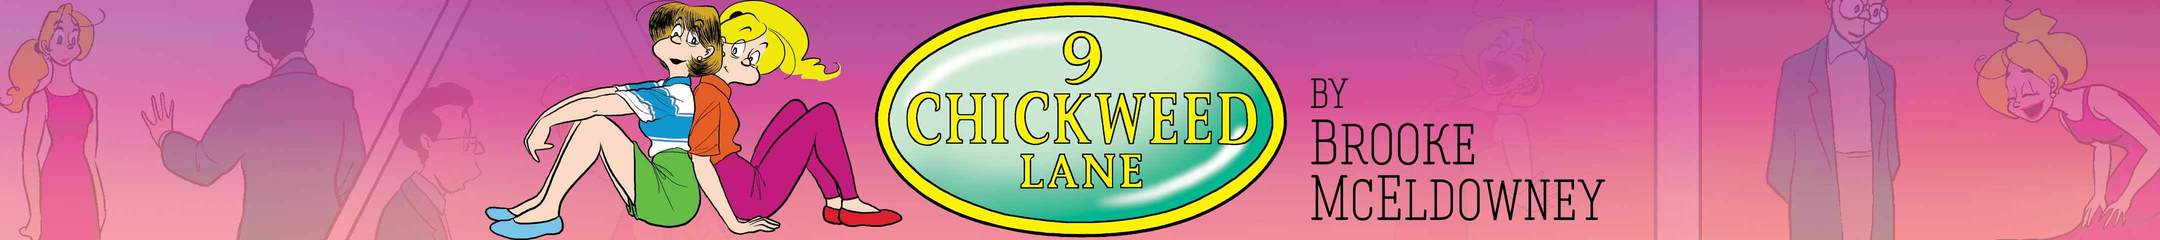 9 Chickweed Lane